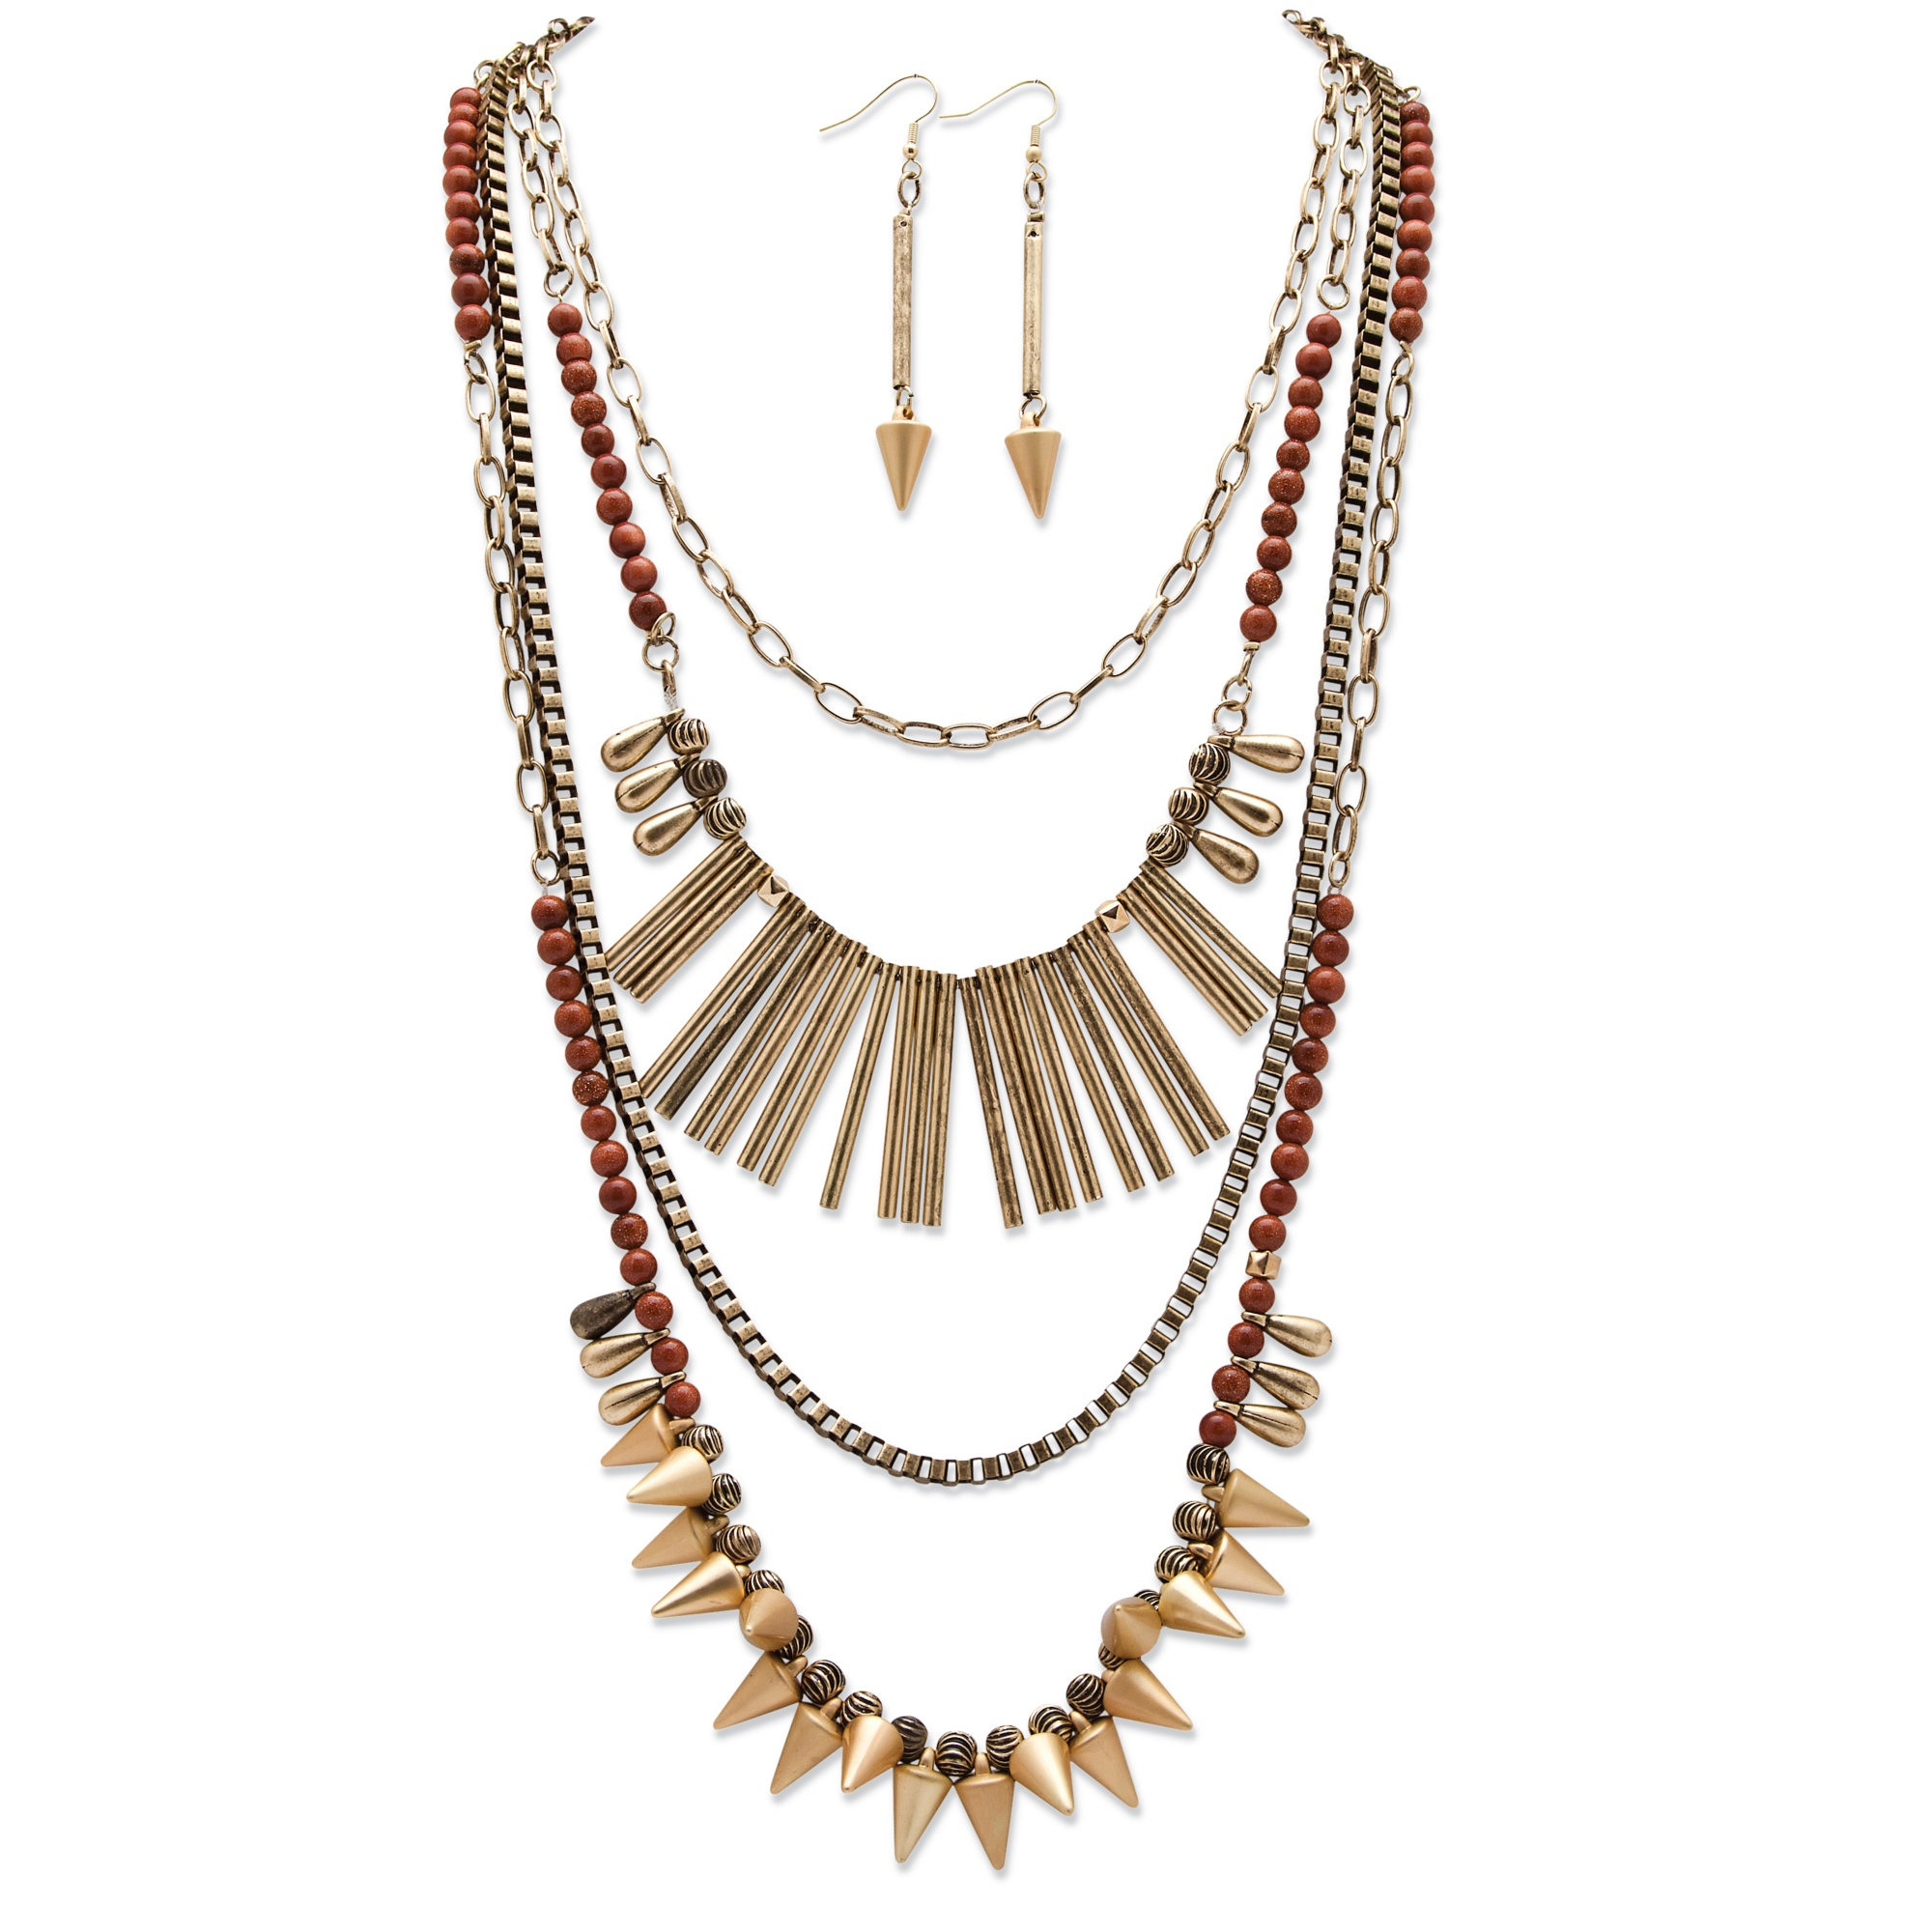 "Round Lucite and Multi-Charm Vintage-Inspired 2-Piece Necklace and Earrings Set in Antique Gold Tone Adjustable 20""-22.5"""